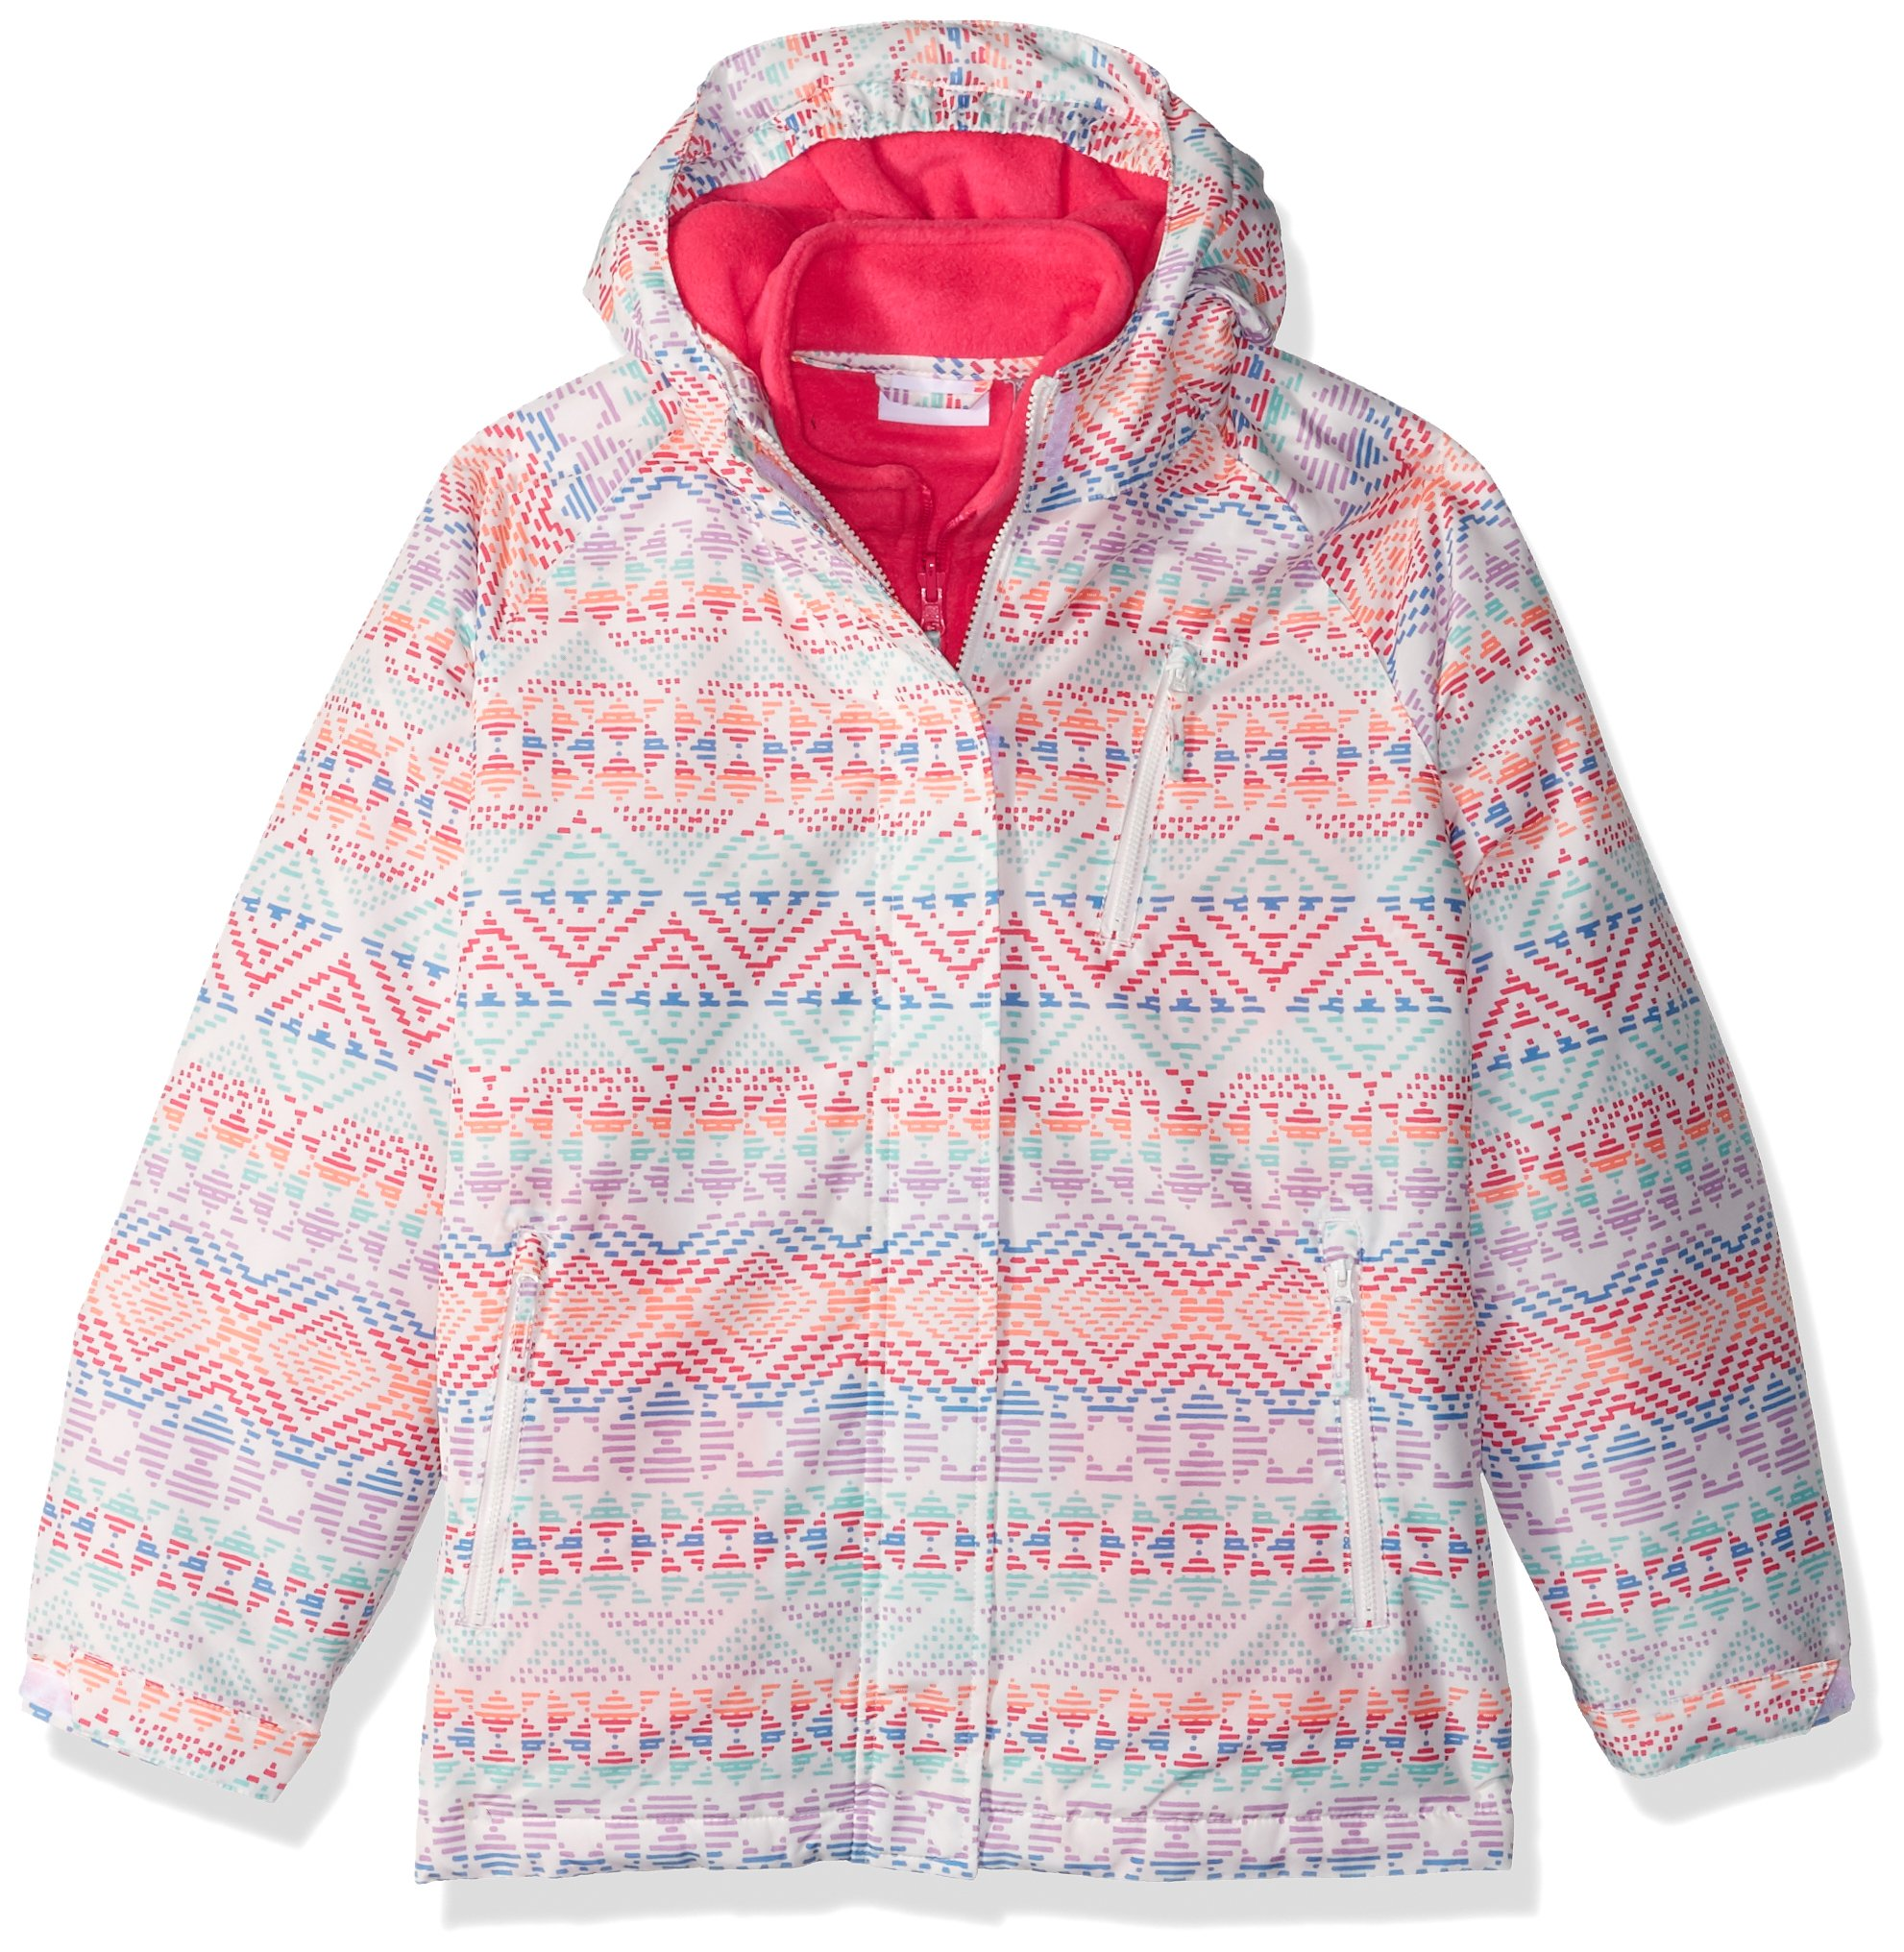 The Children's Place Big Girls' Printed 3-in-1 Jacket, Simplywht, XS (4)